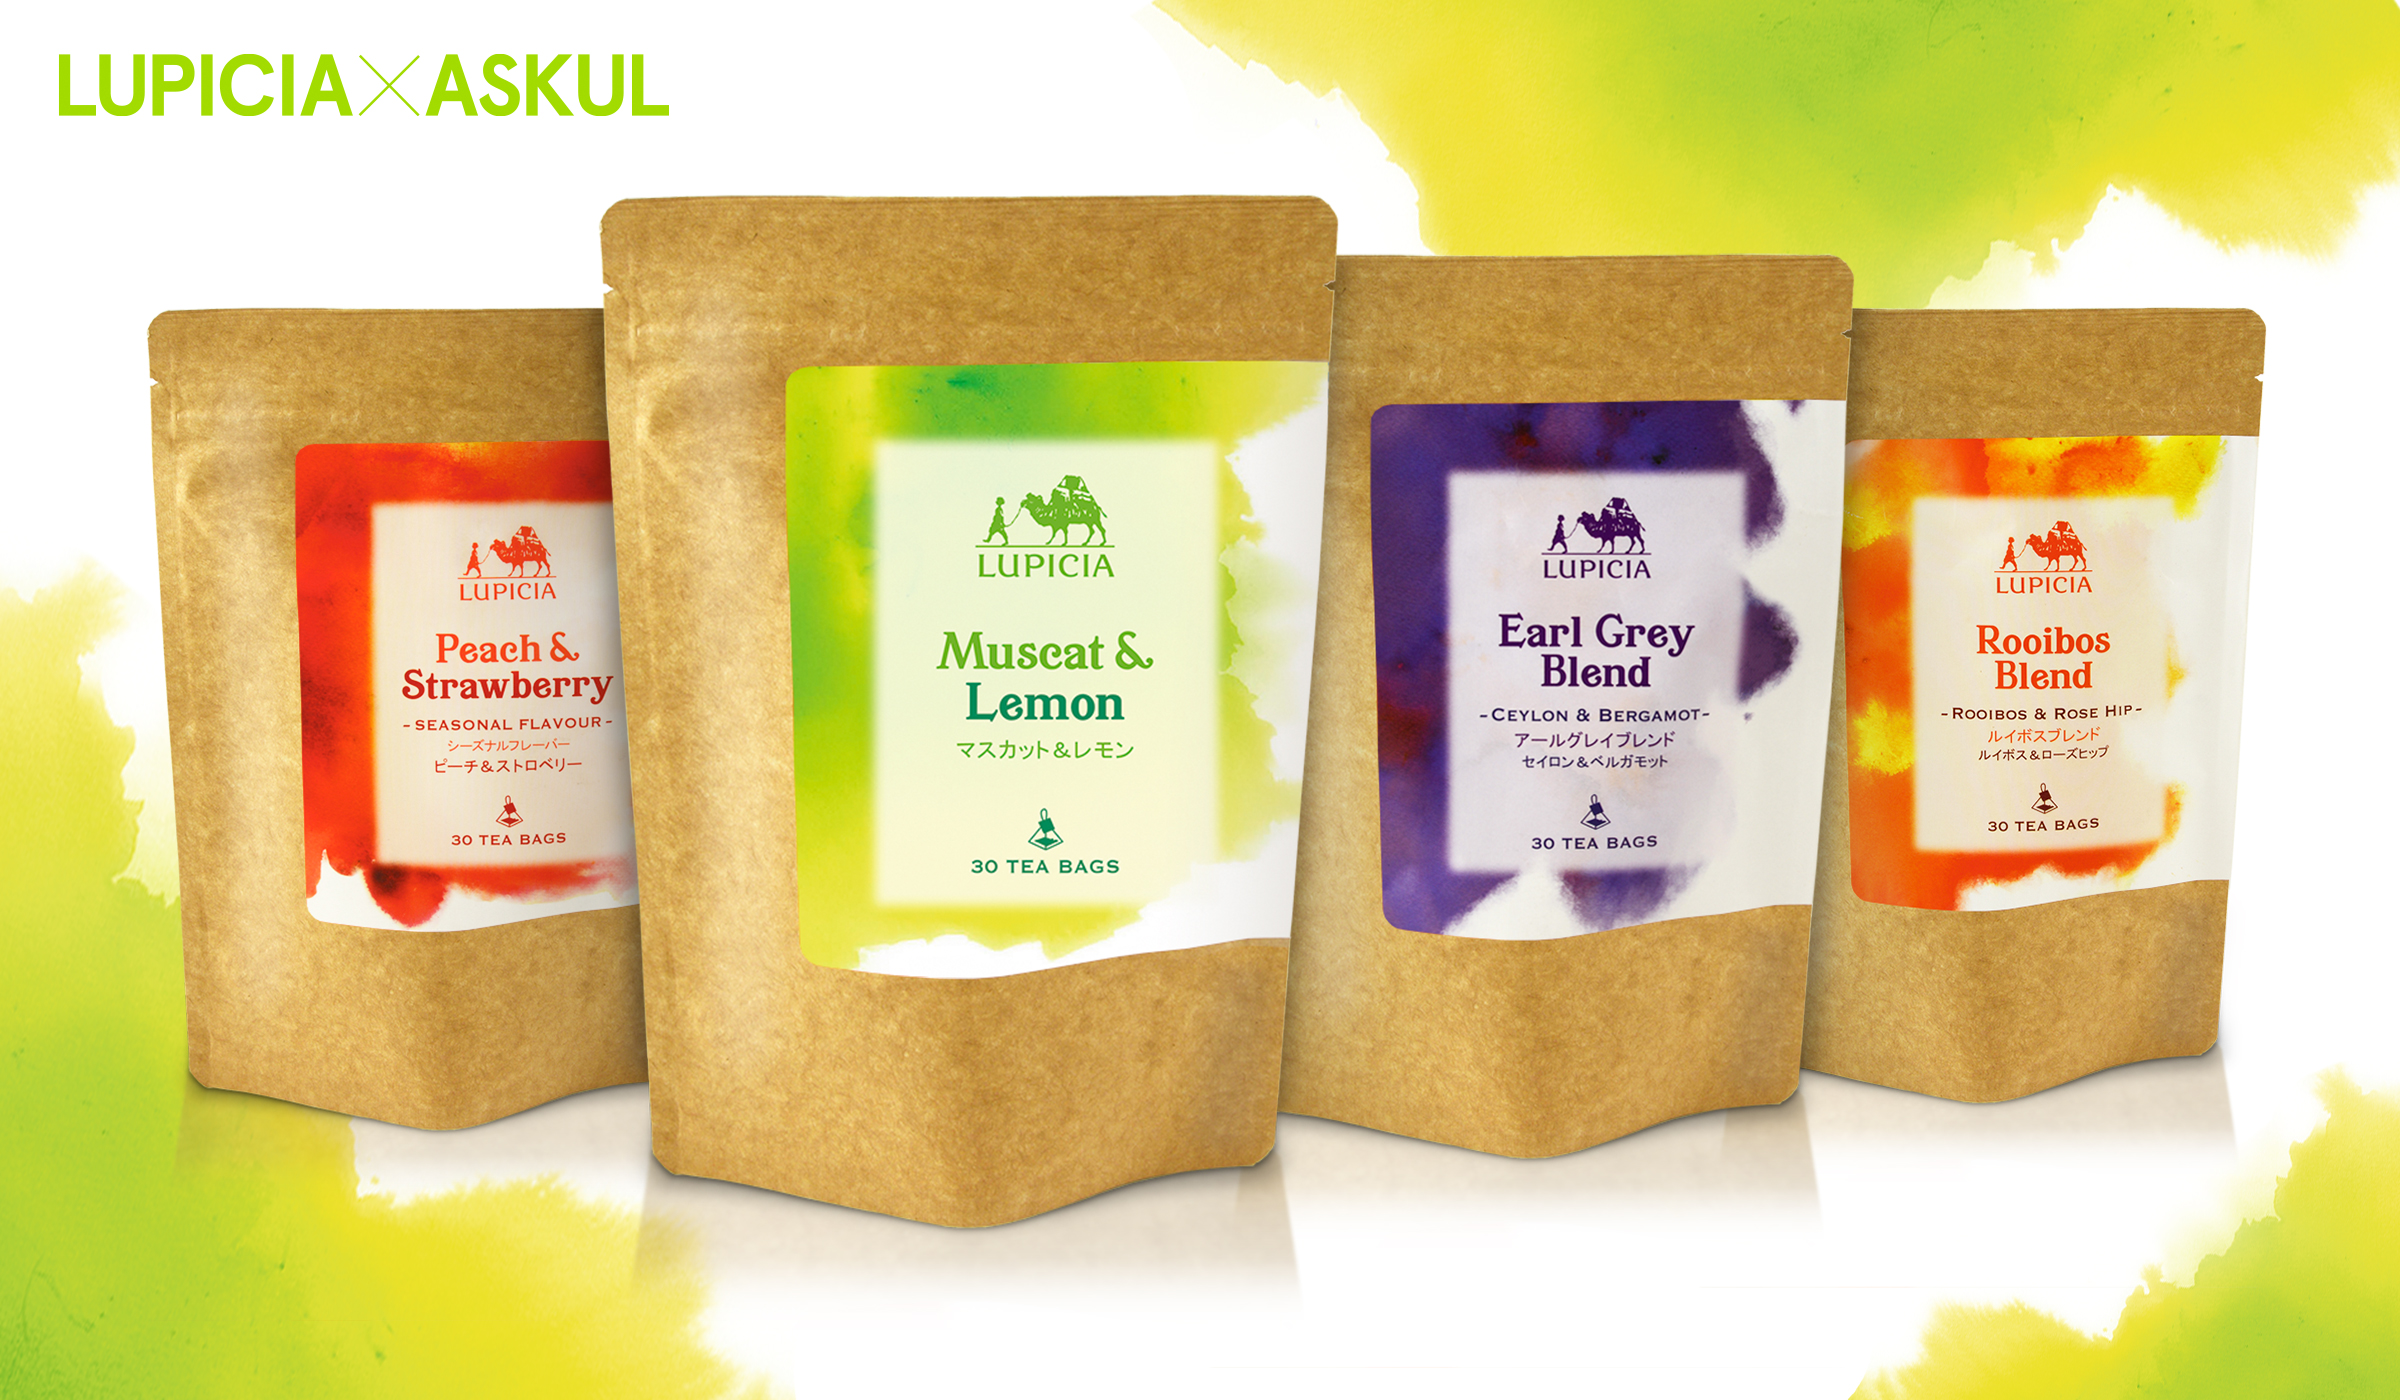 An image of four pouches on a watercolour background. The colourful packaging designs by Pemberton & Whitefoord LLP feature bespoke watercolour illustrations. There are four flavour of tea featured, including an Earl Grey Blend.